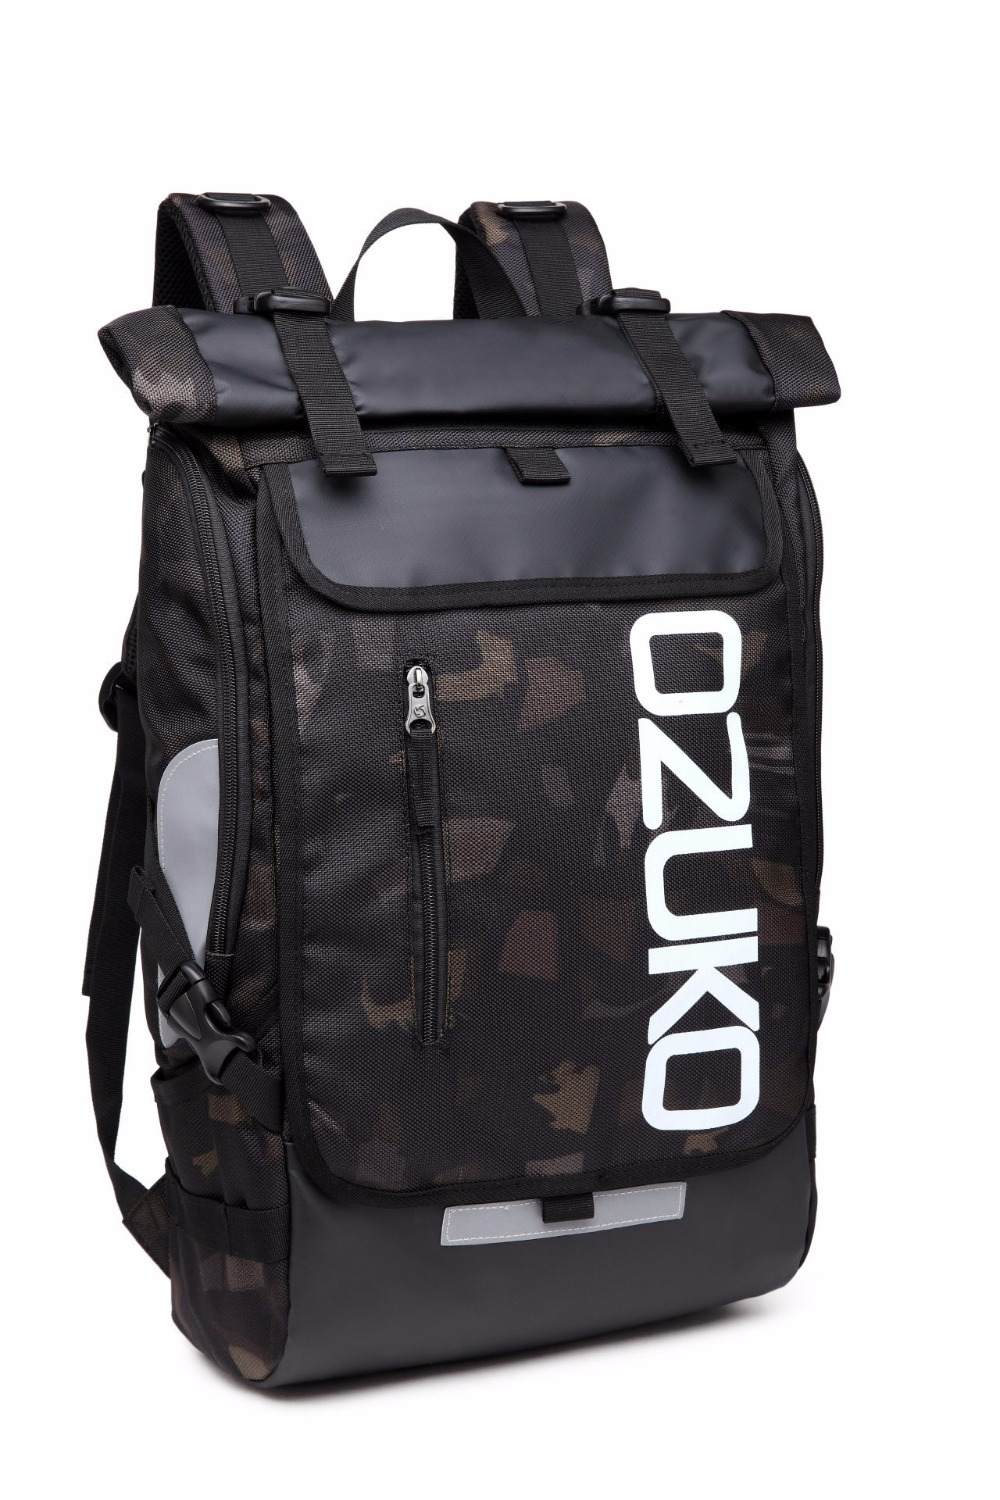 The commonly seen backpacks for girls is very popular nowadays among young  people! The fashionable design of waterproof backpack makes them so  charming and ... fab34e335592e